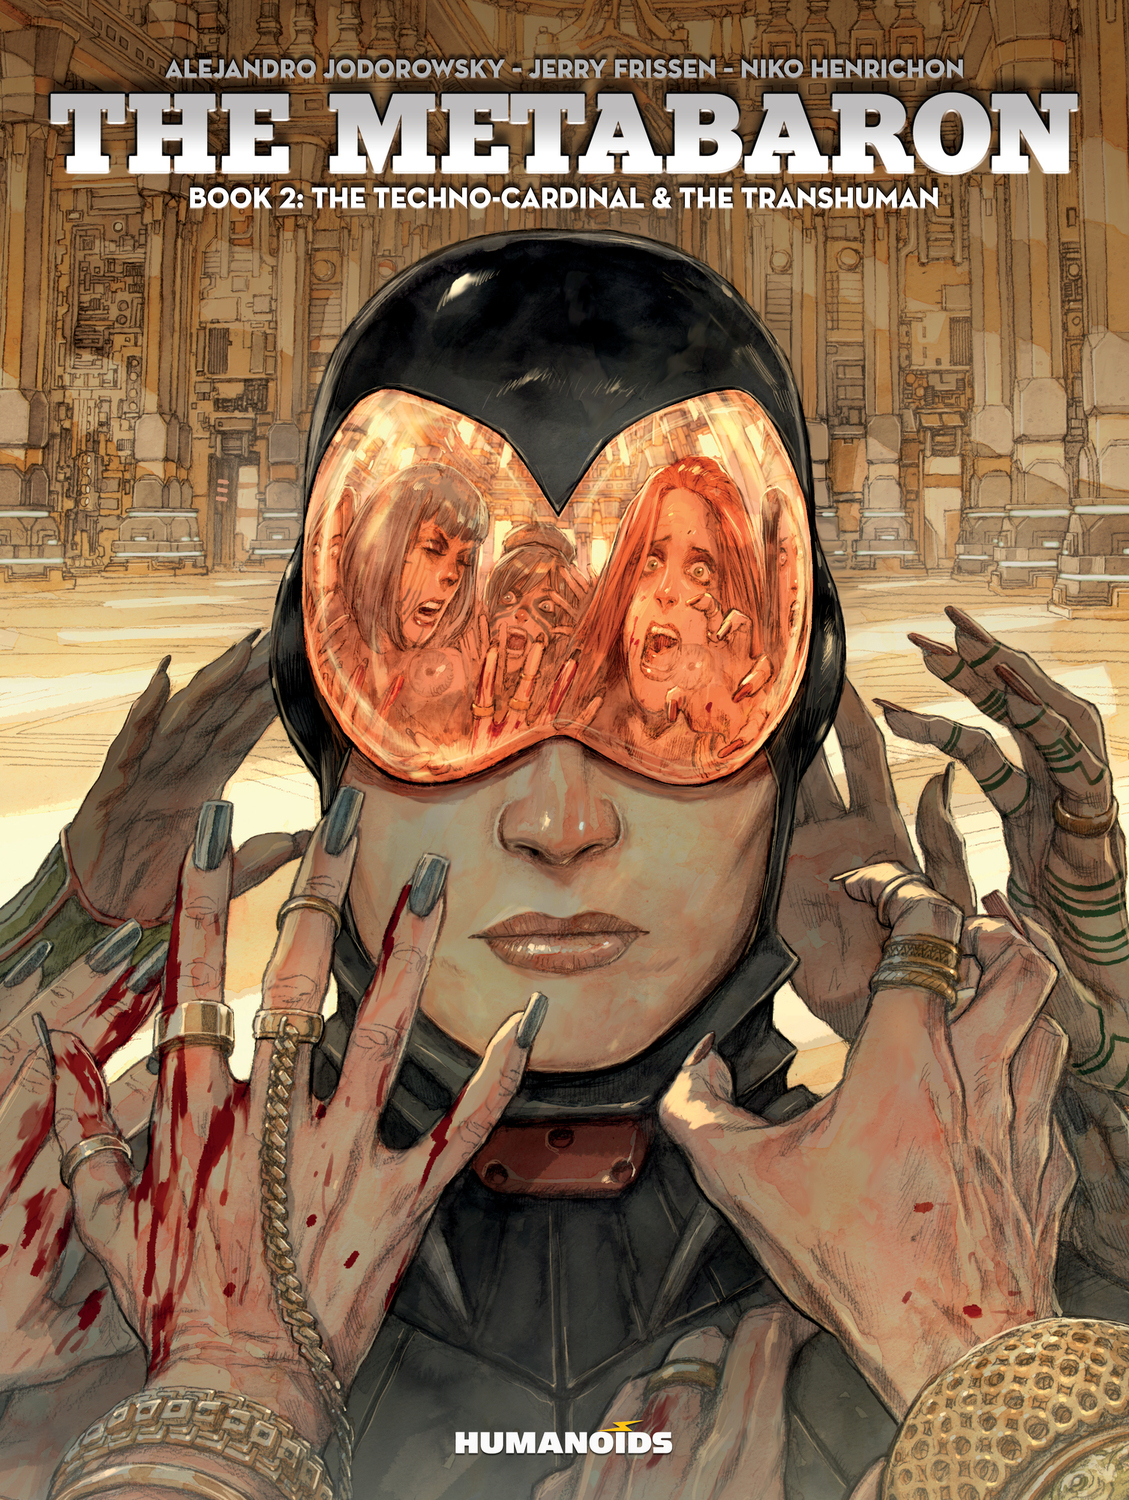 The Metabaron : Book 2: The Techno-Cardinal & The Transhuman - Oversized Deluxe